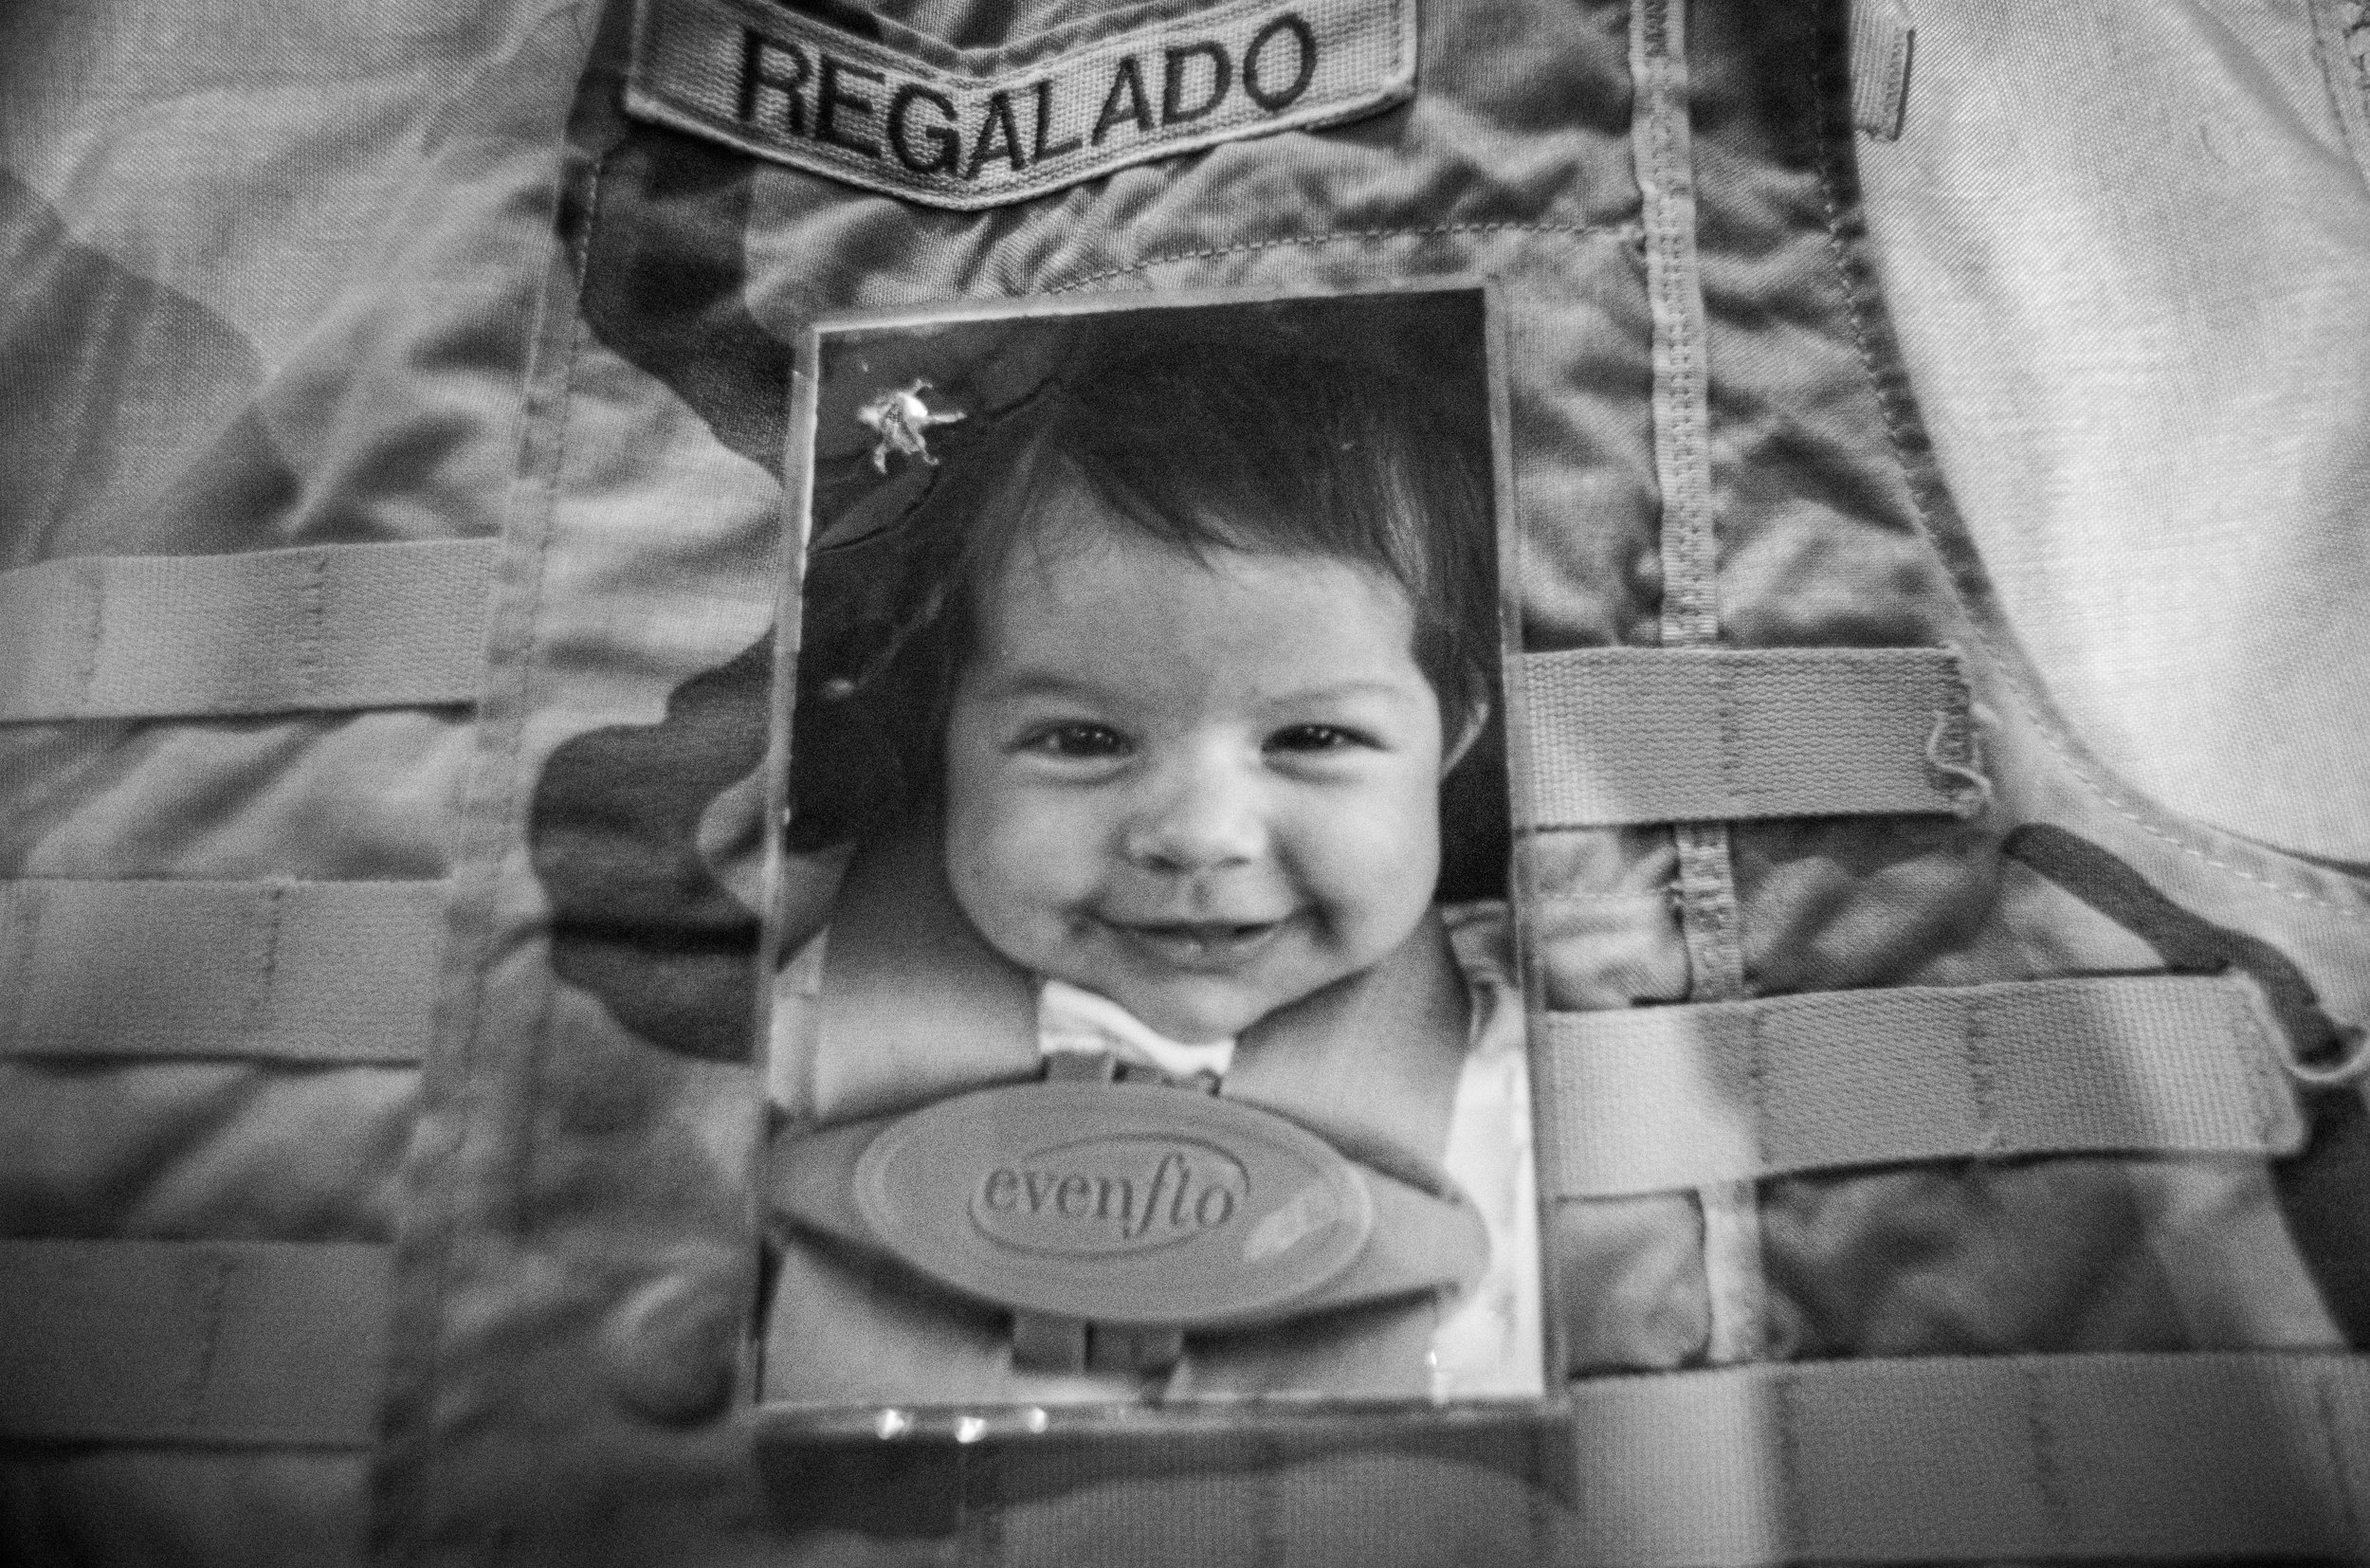 Josè was carrying this image of his daughter when he was killed. The upper left of the photo is where the bullet struck him, leaving him quickly incapacitated.